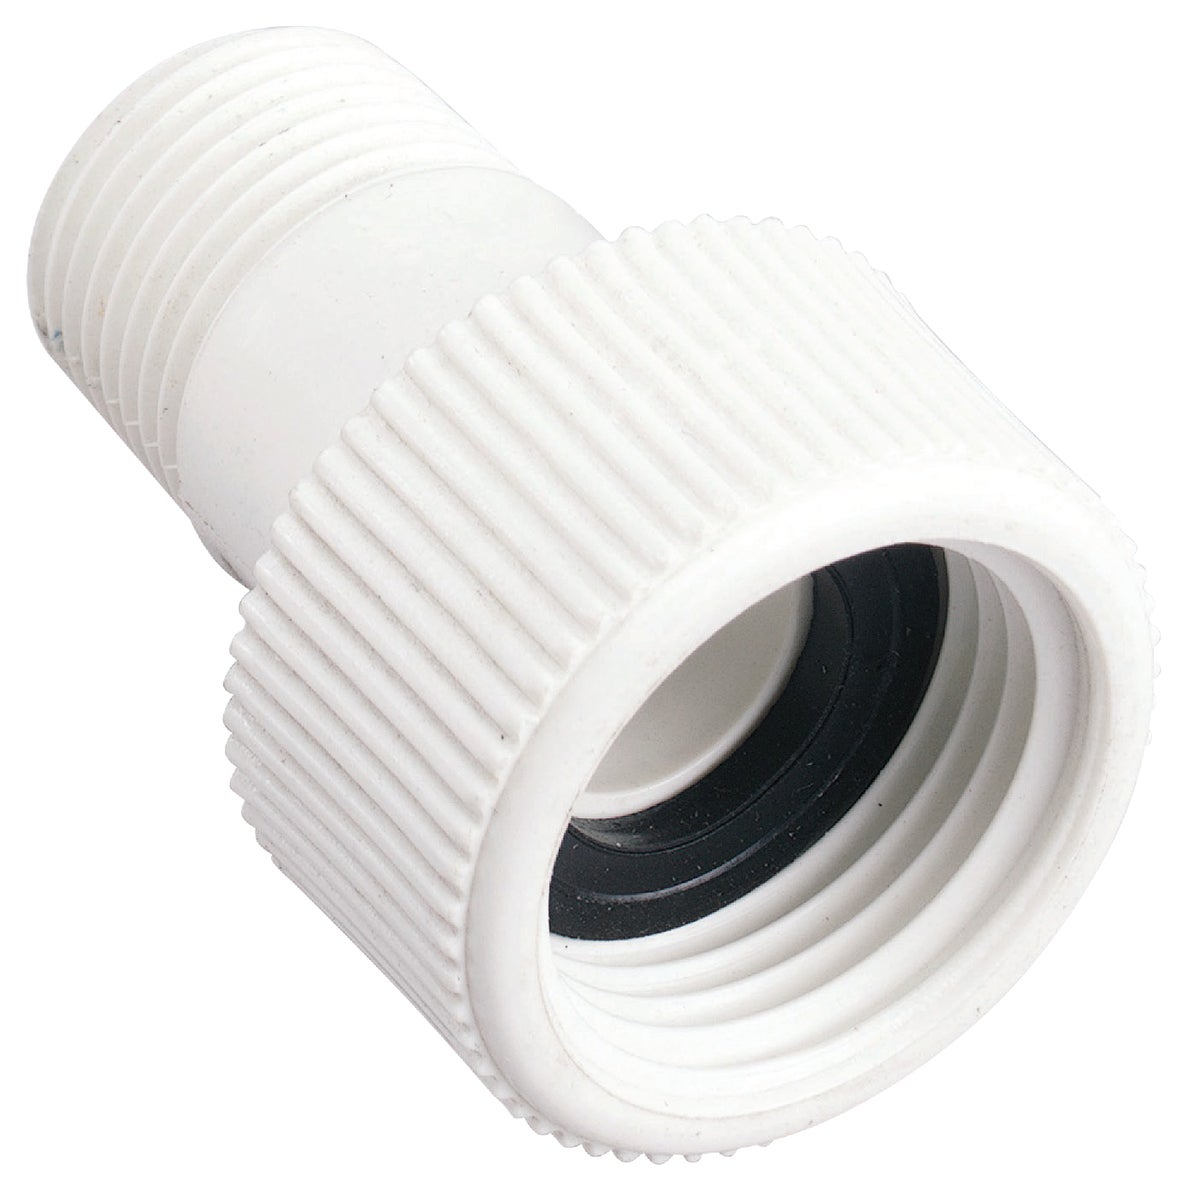 PVC HOSE COUPLING - 53365 by Orbit